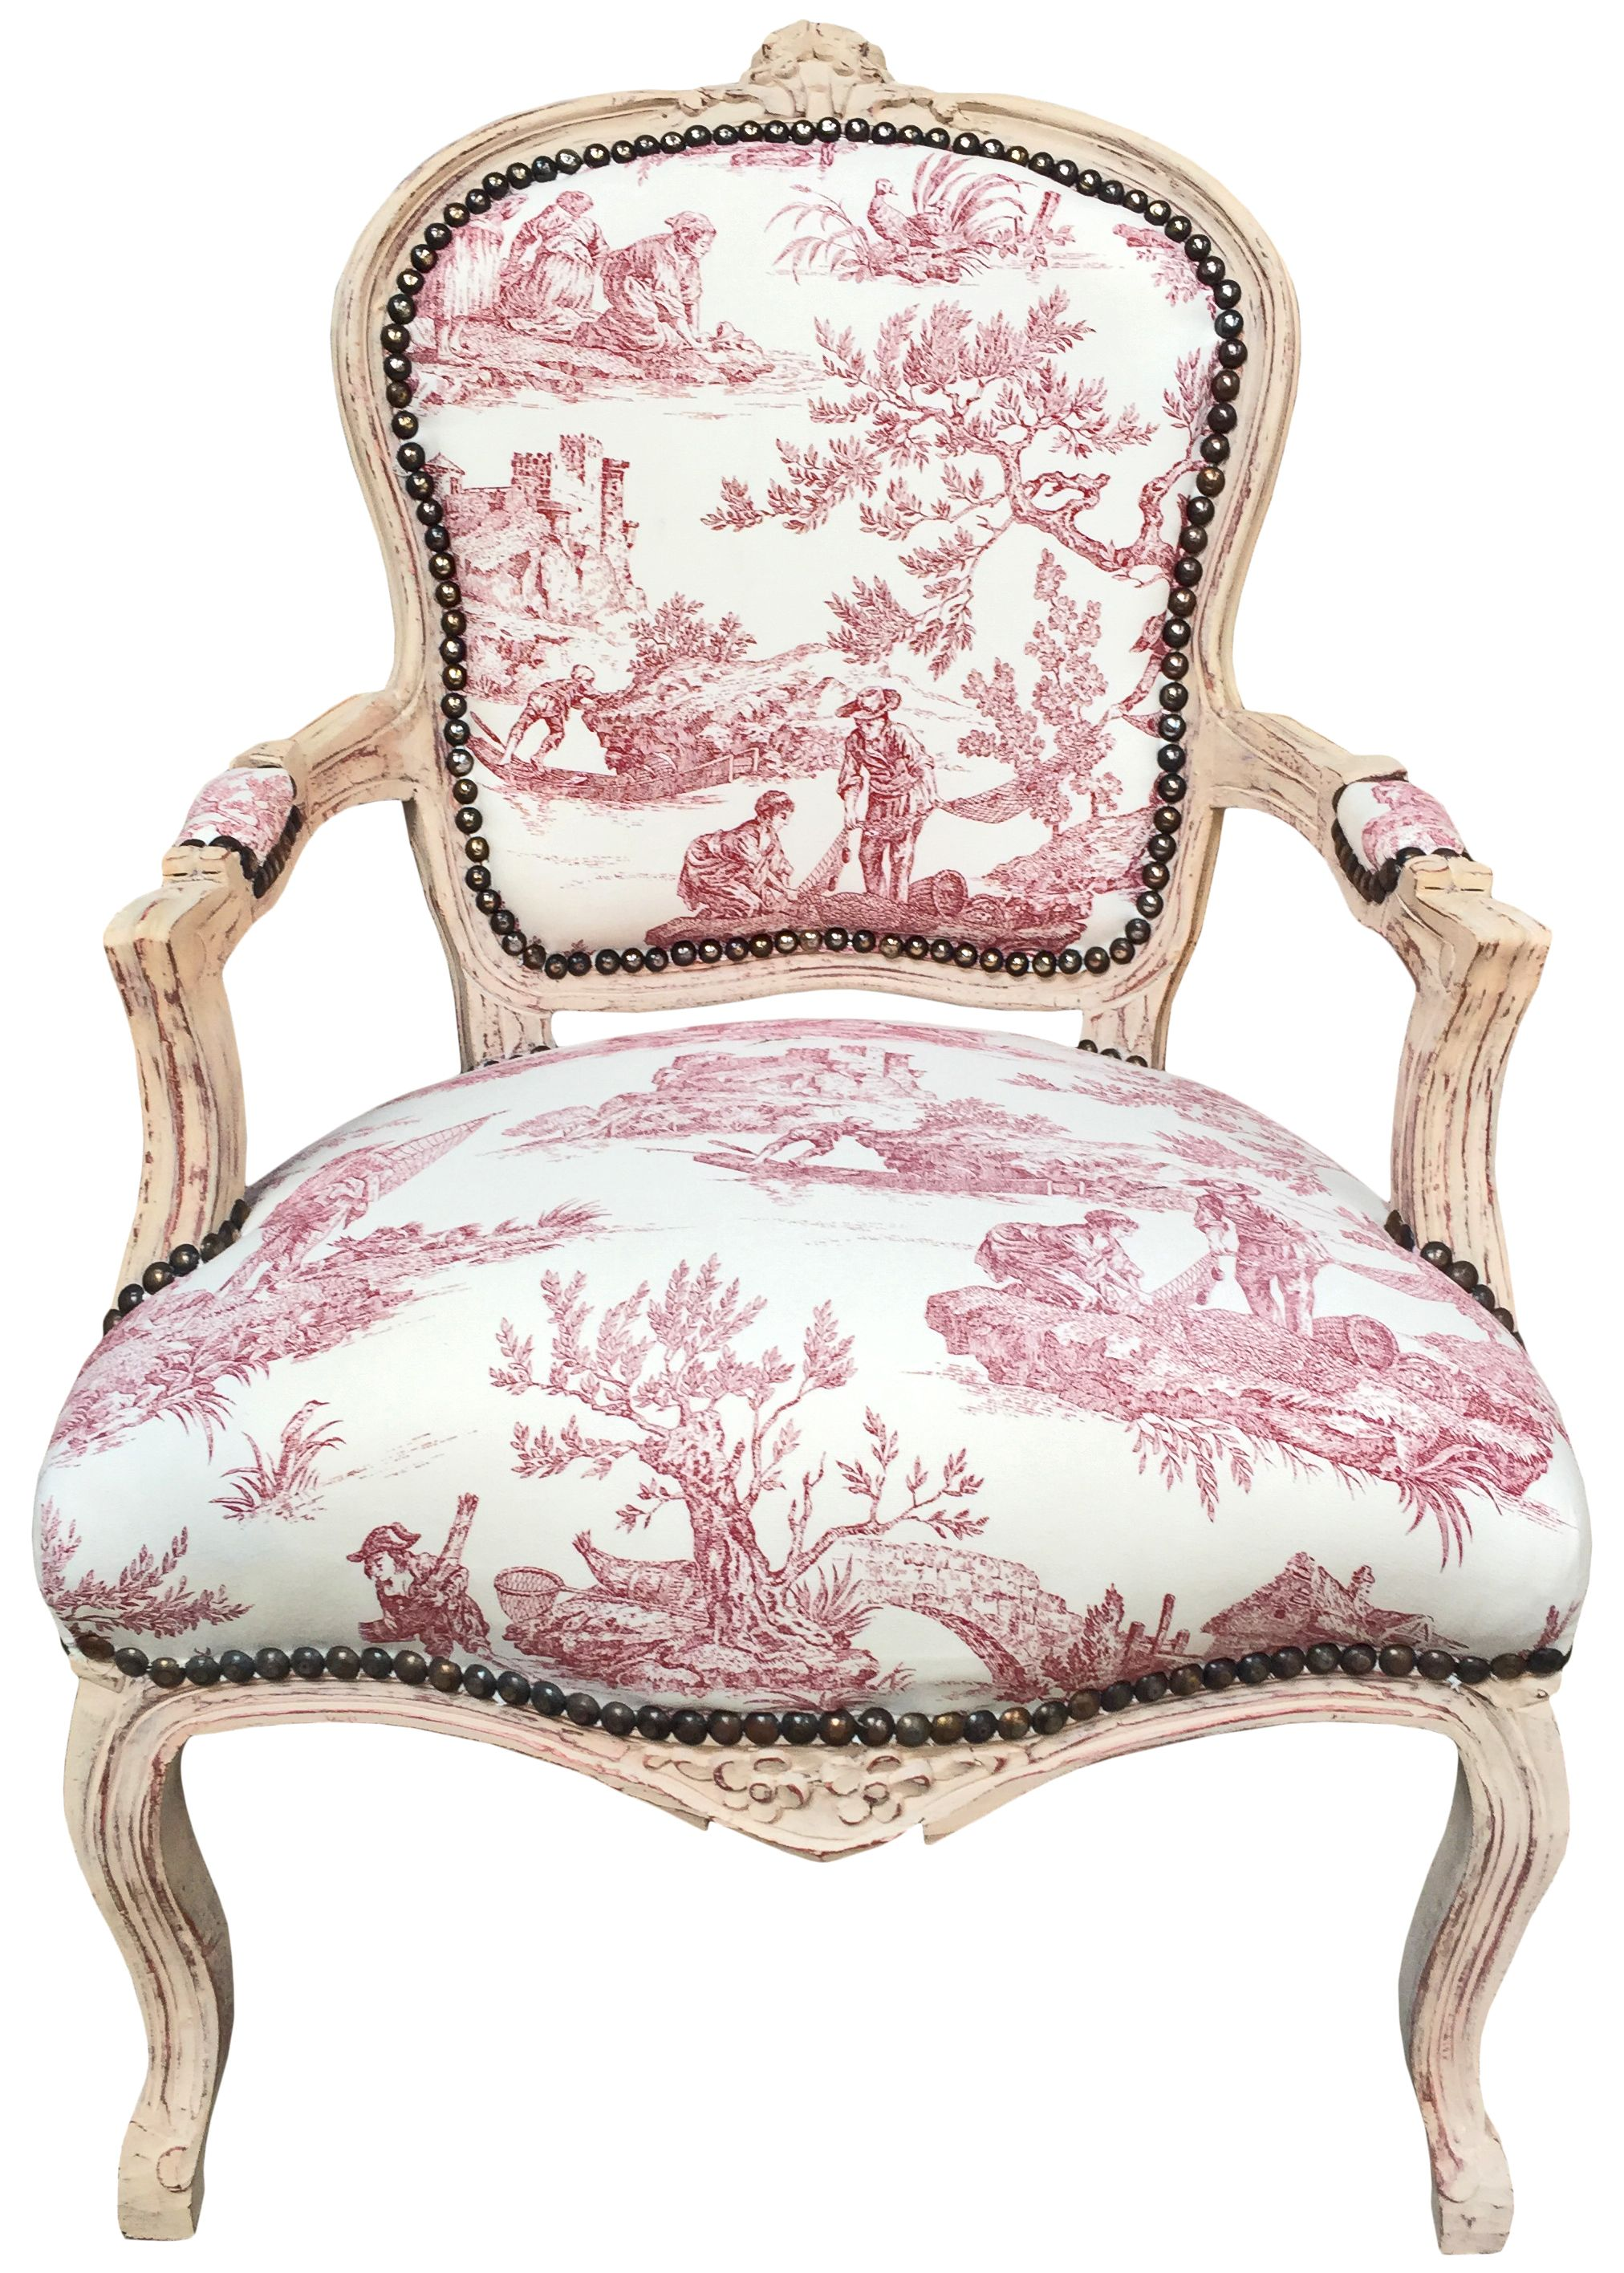 Astonishing Baroque Armchair Of Louis Xv Style Toile De Jouy And Beige Wood Caraccident5 Cool Chair Designs And Ideas Caraccident5Info